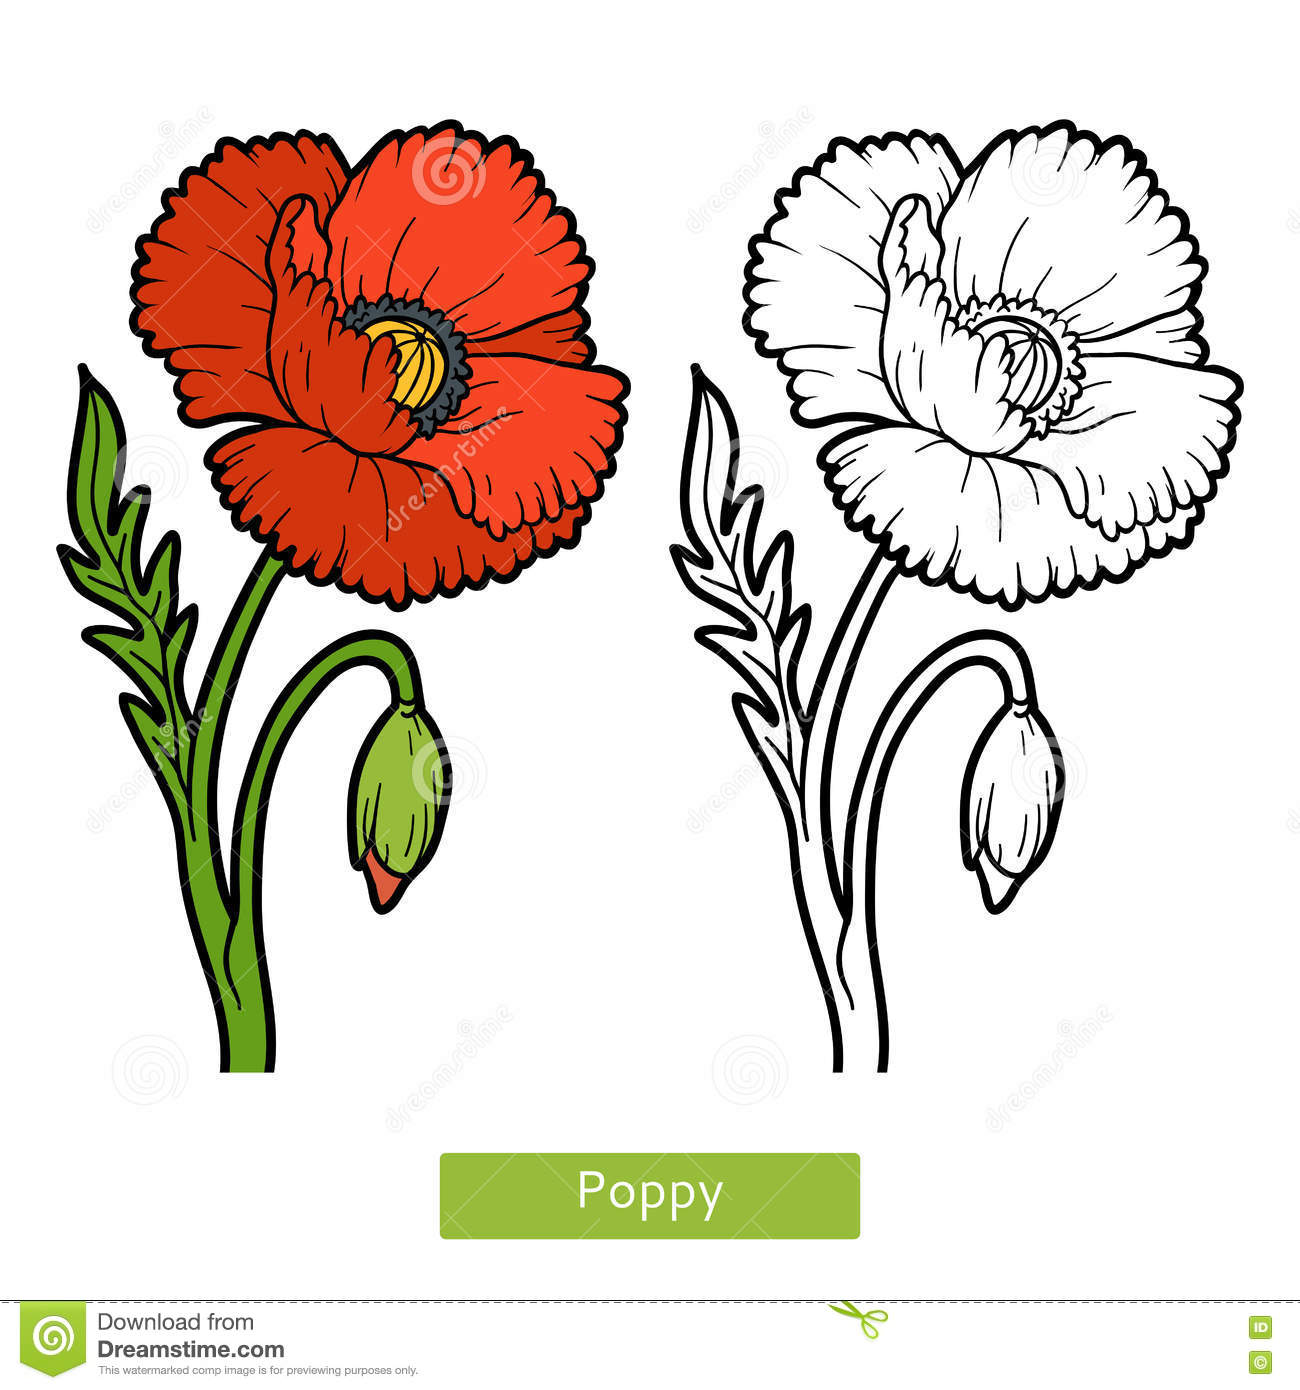 Coloring Book, Flower Poppy Stock Vector - Illustration of colorful ...